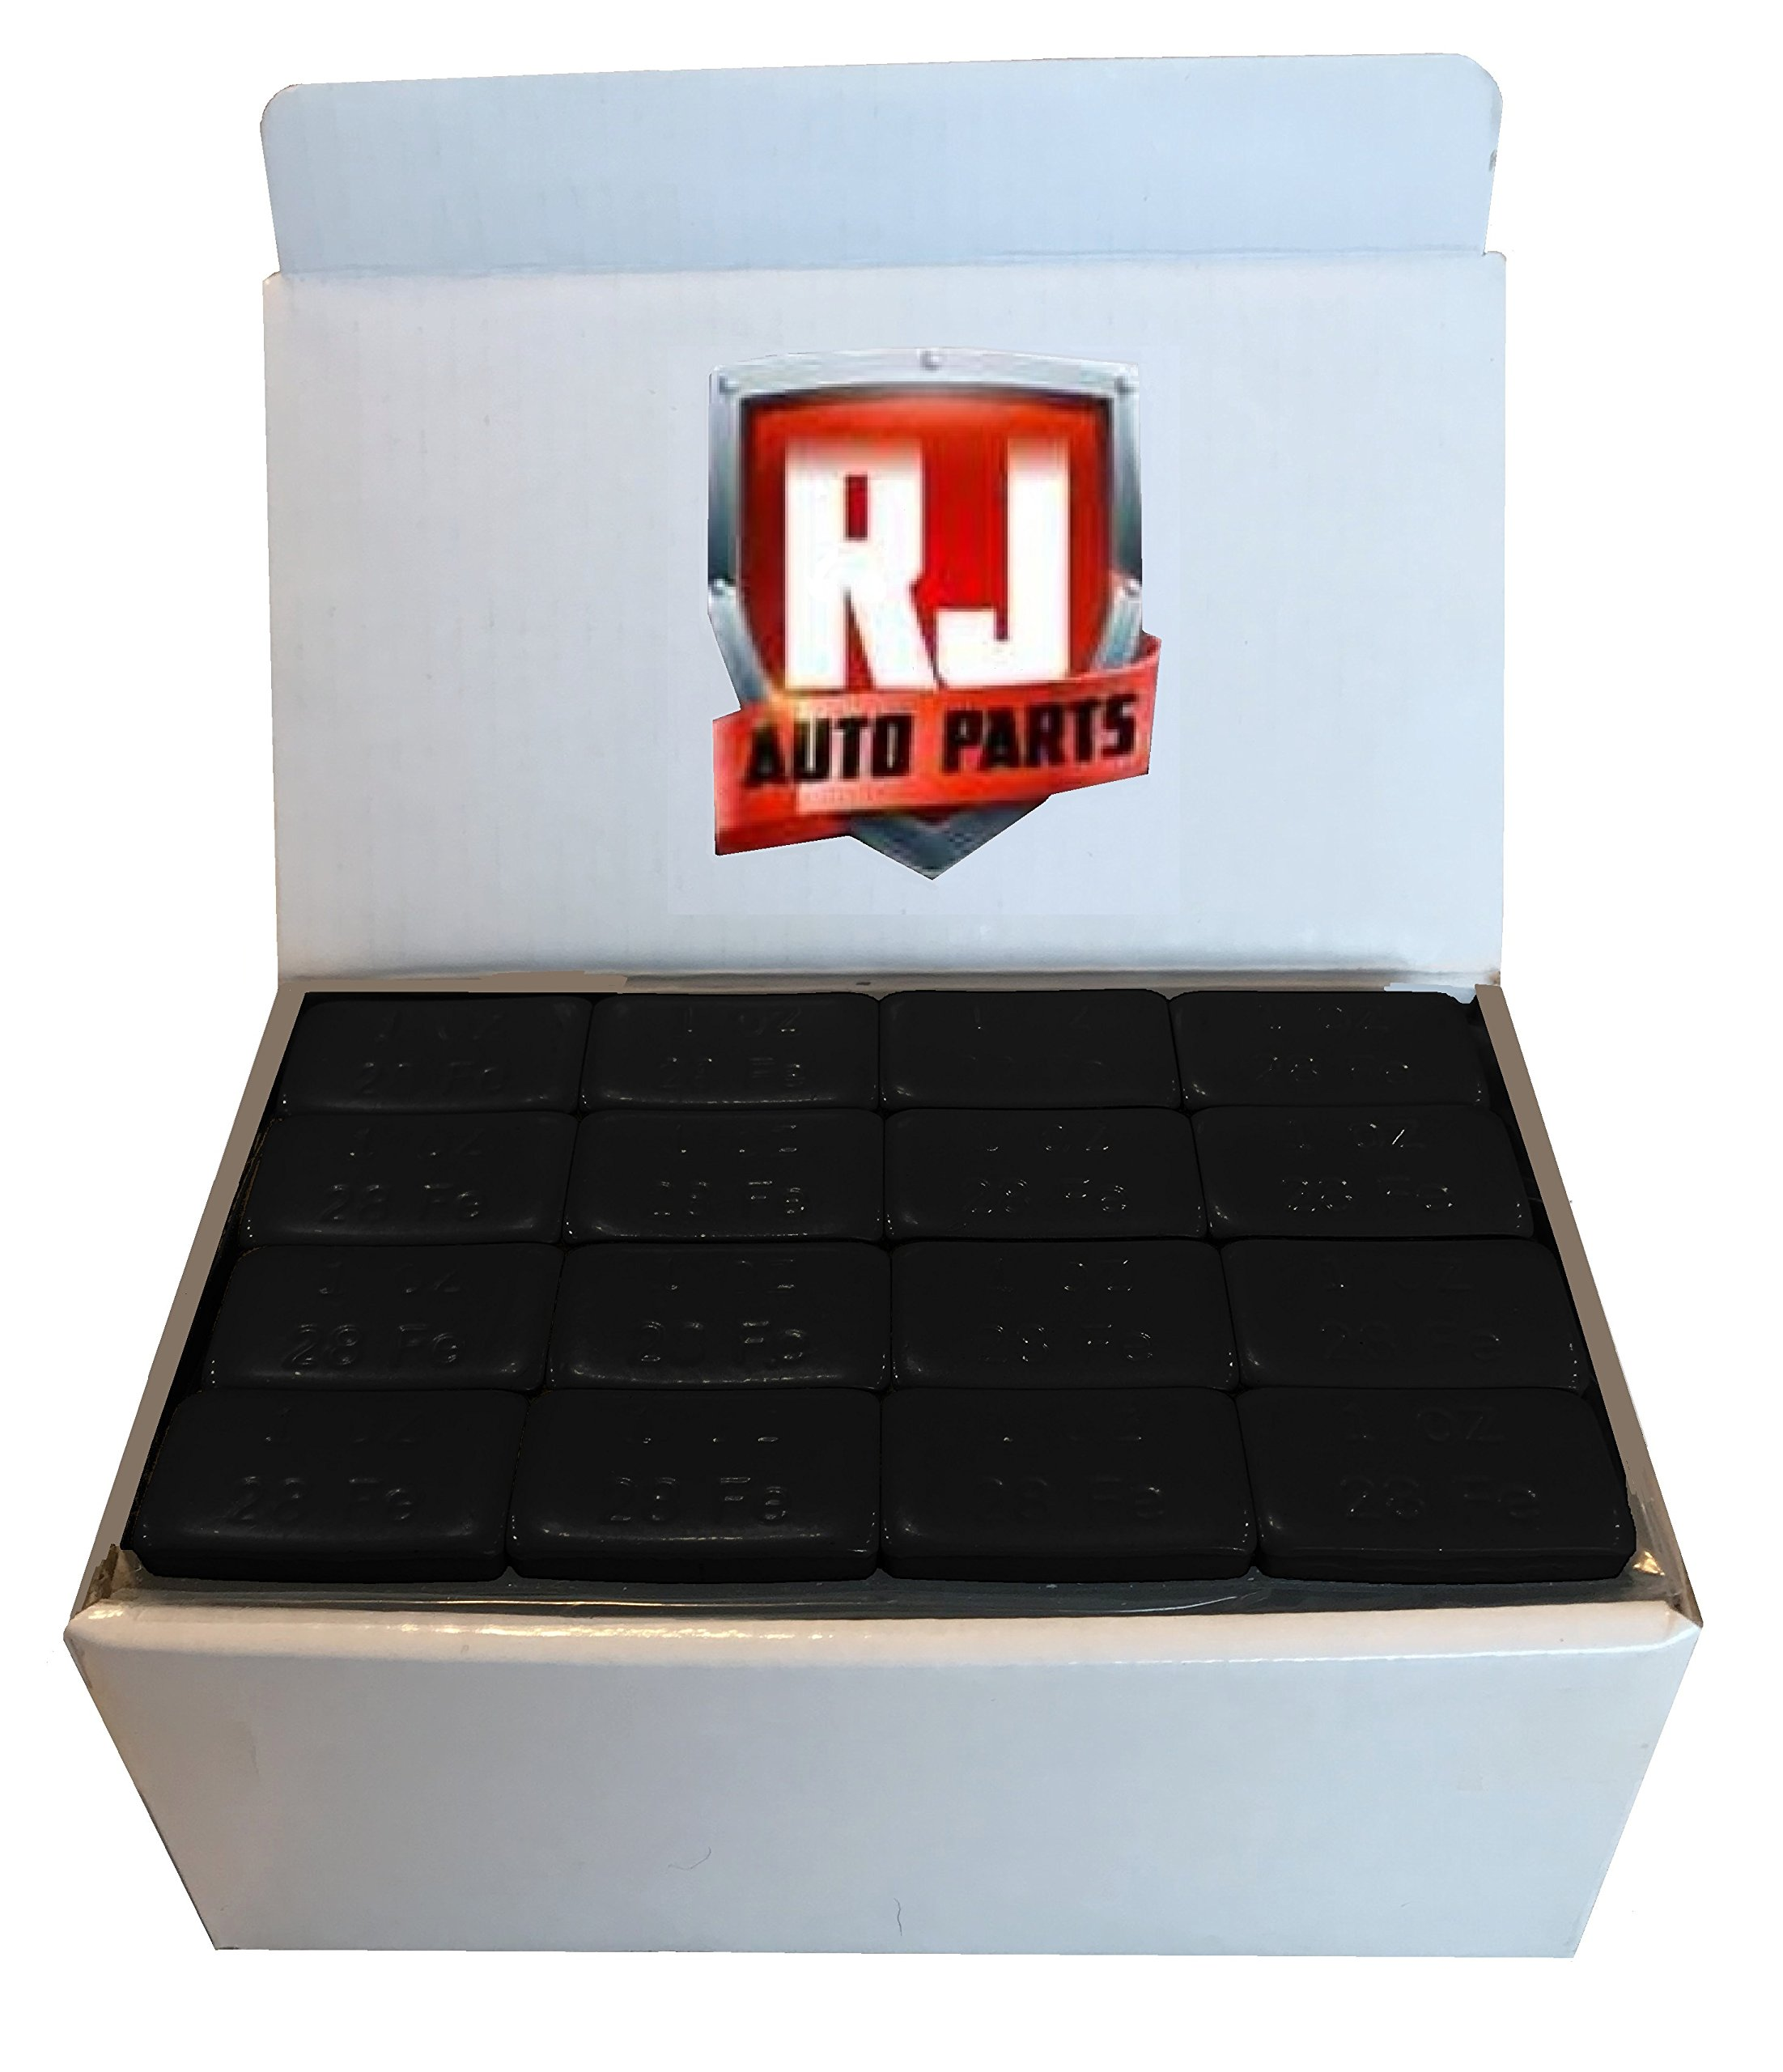 1 Box Wheel Weights, Black 1 oz., Stick-on Adhesive Tape, Lead Free (9 lbs) 144 pieces by RJ Auto Parts (Image #1)